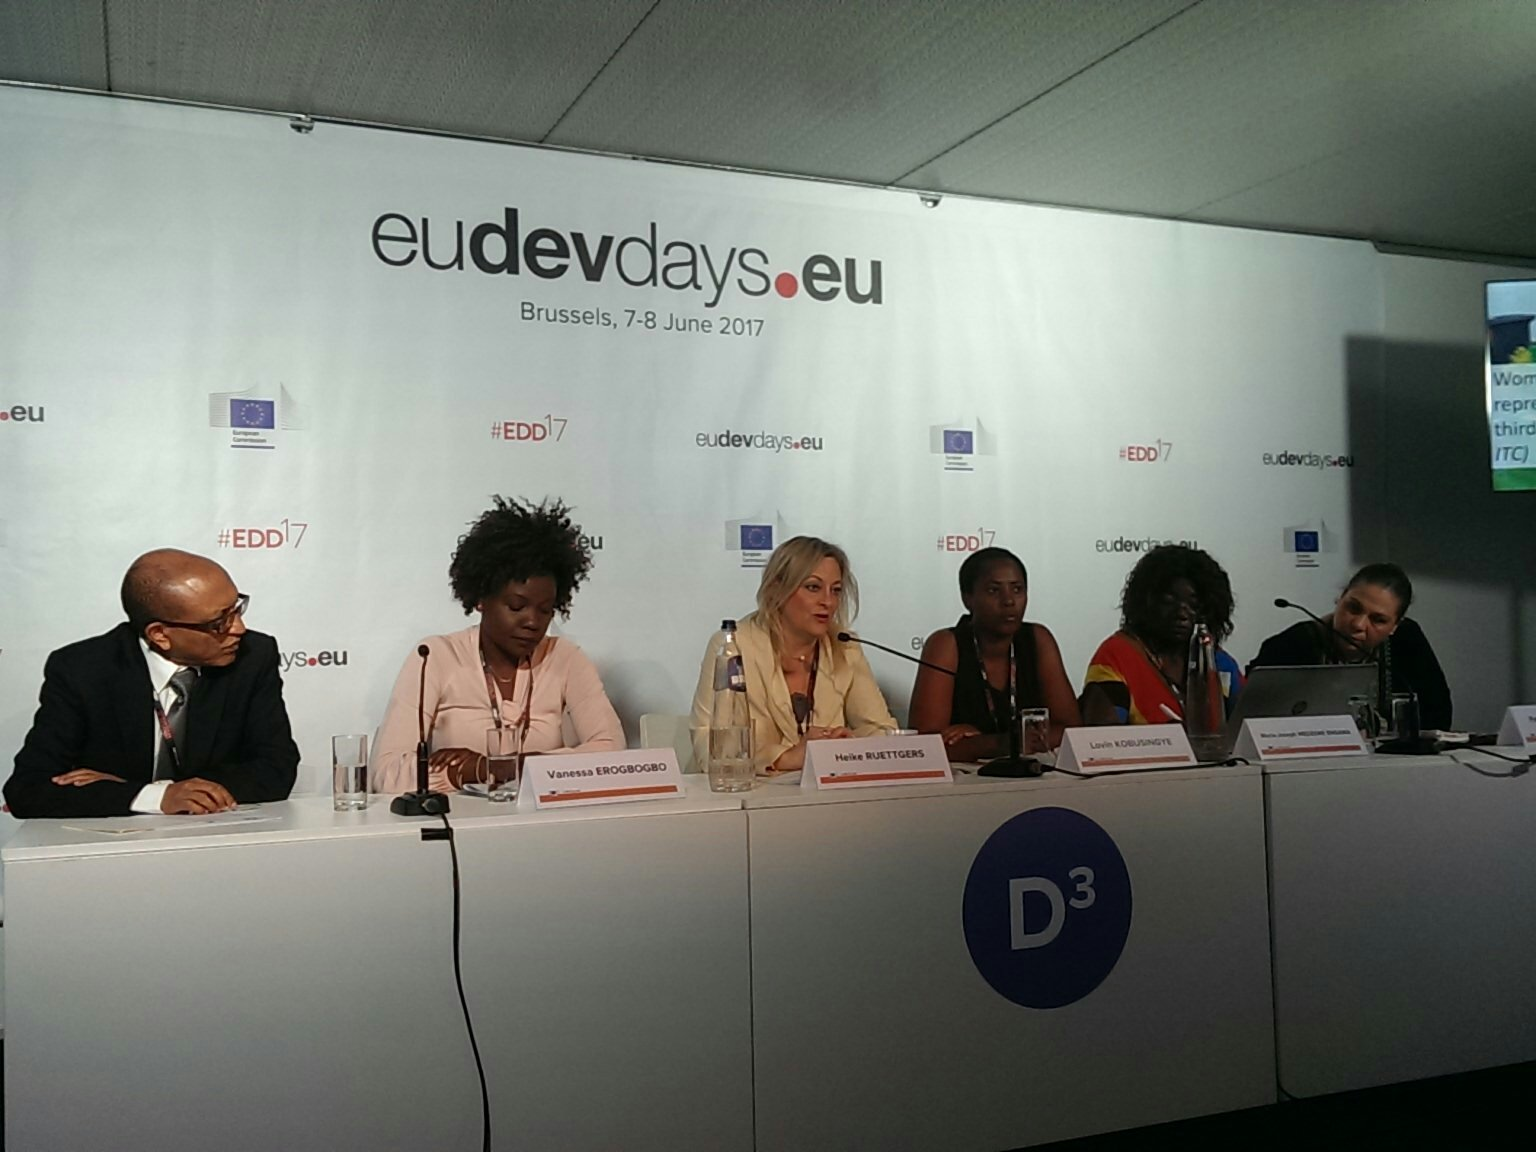 #Women face many challenges & discrimination in accessing #finance - which means banks need incentives to lend to women @ruettgers_h #EDD17 https://t.co/K6hRgiKxDB